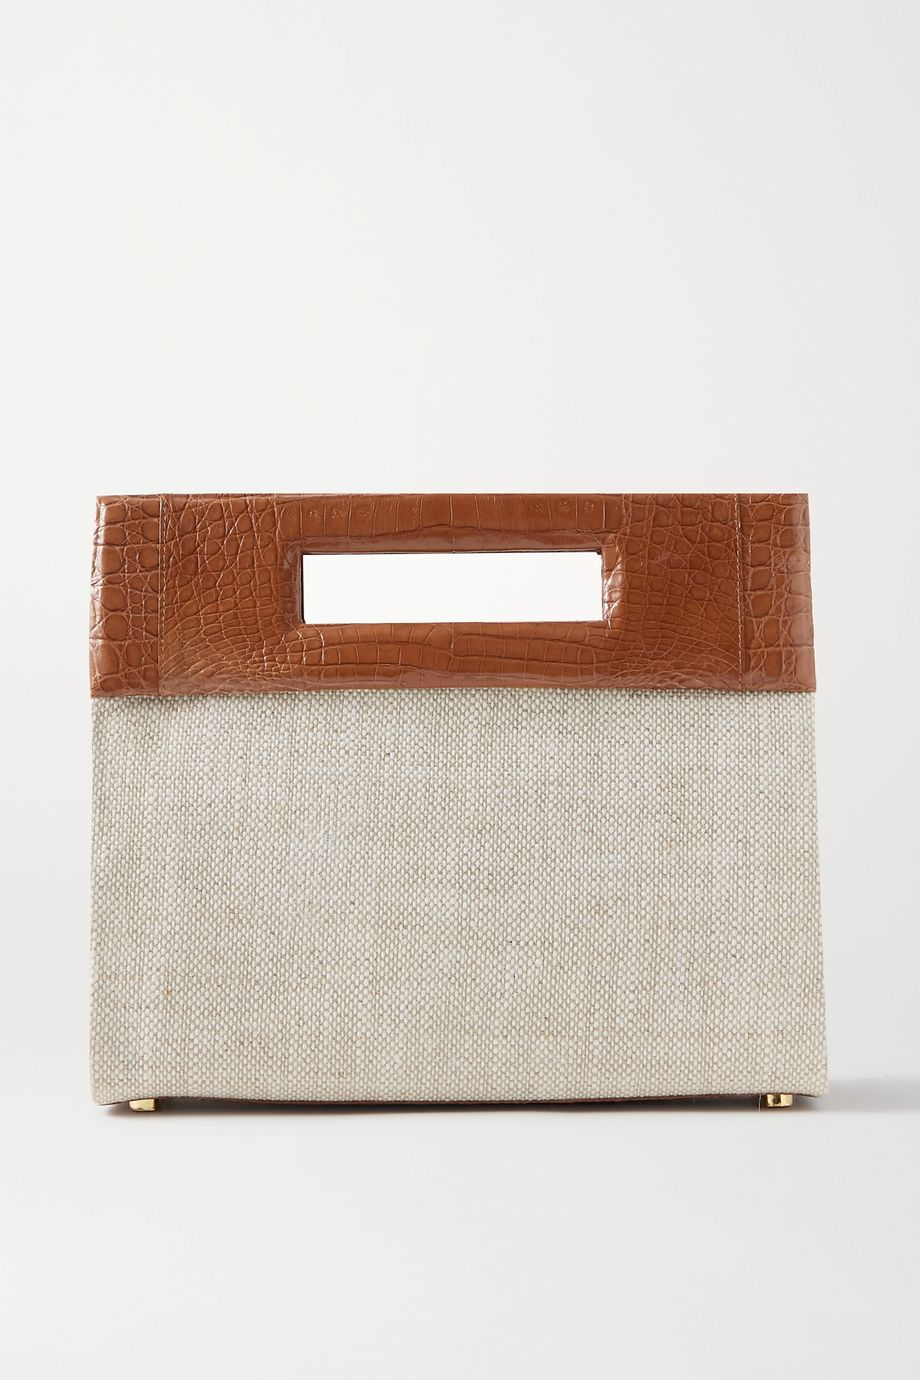 Nancy Gonzalez Keyhole two-tone crocodile and linen tote